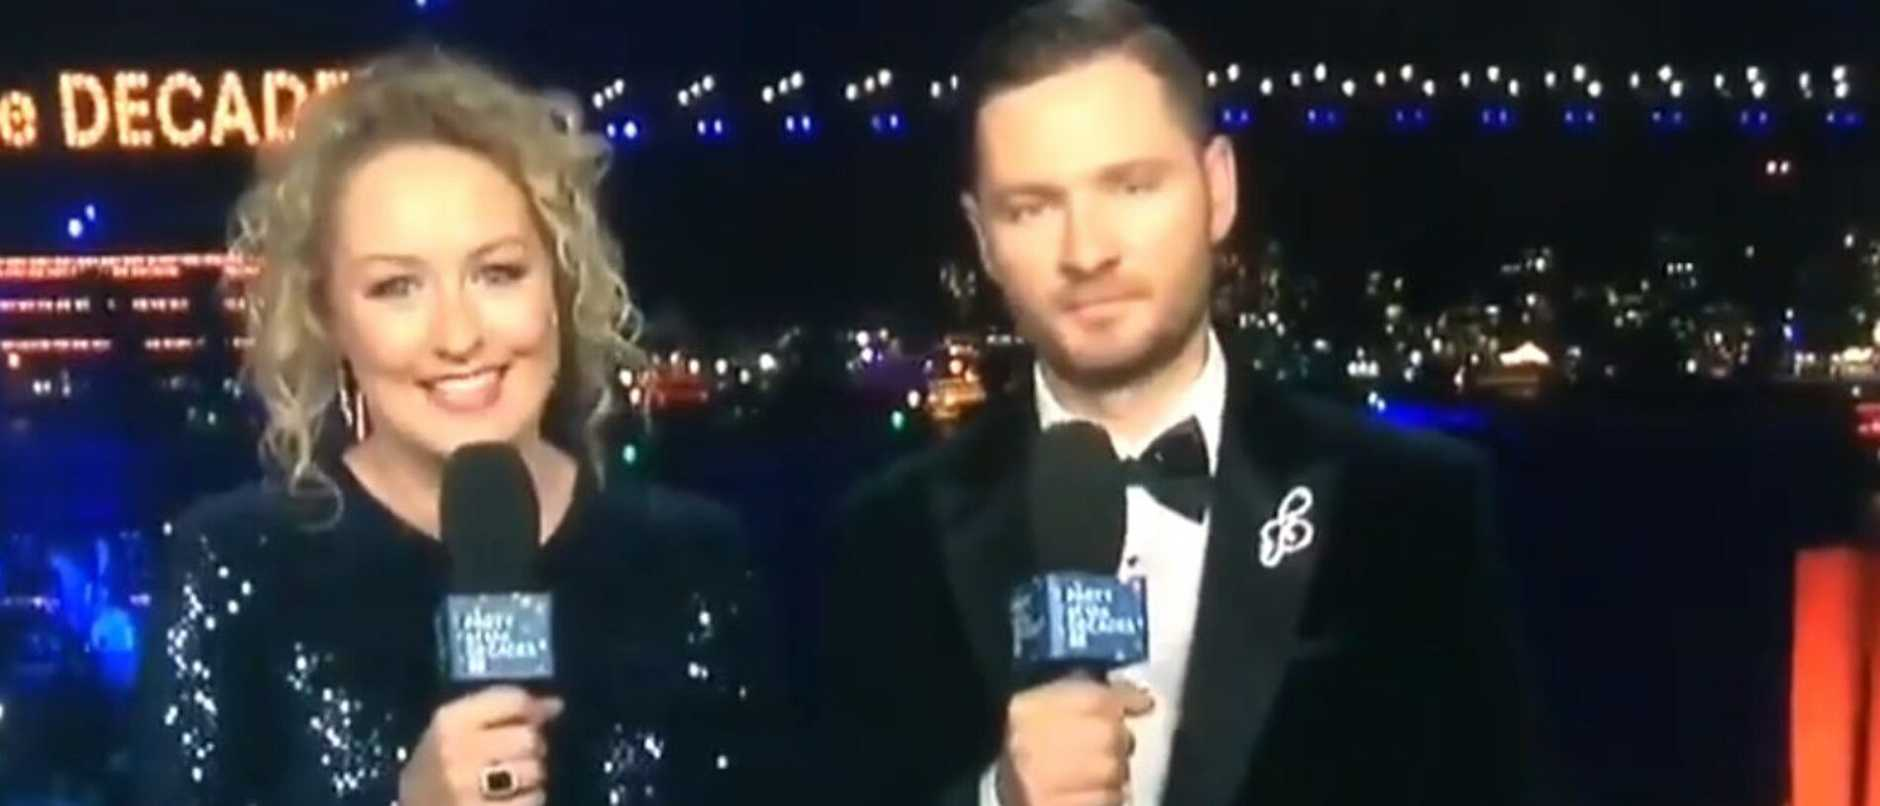 ABC hosts Zan Rowe and Charlie Pickering during the broadcast. Picture: ABC